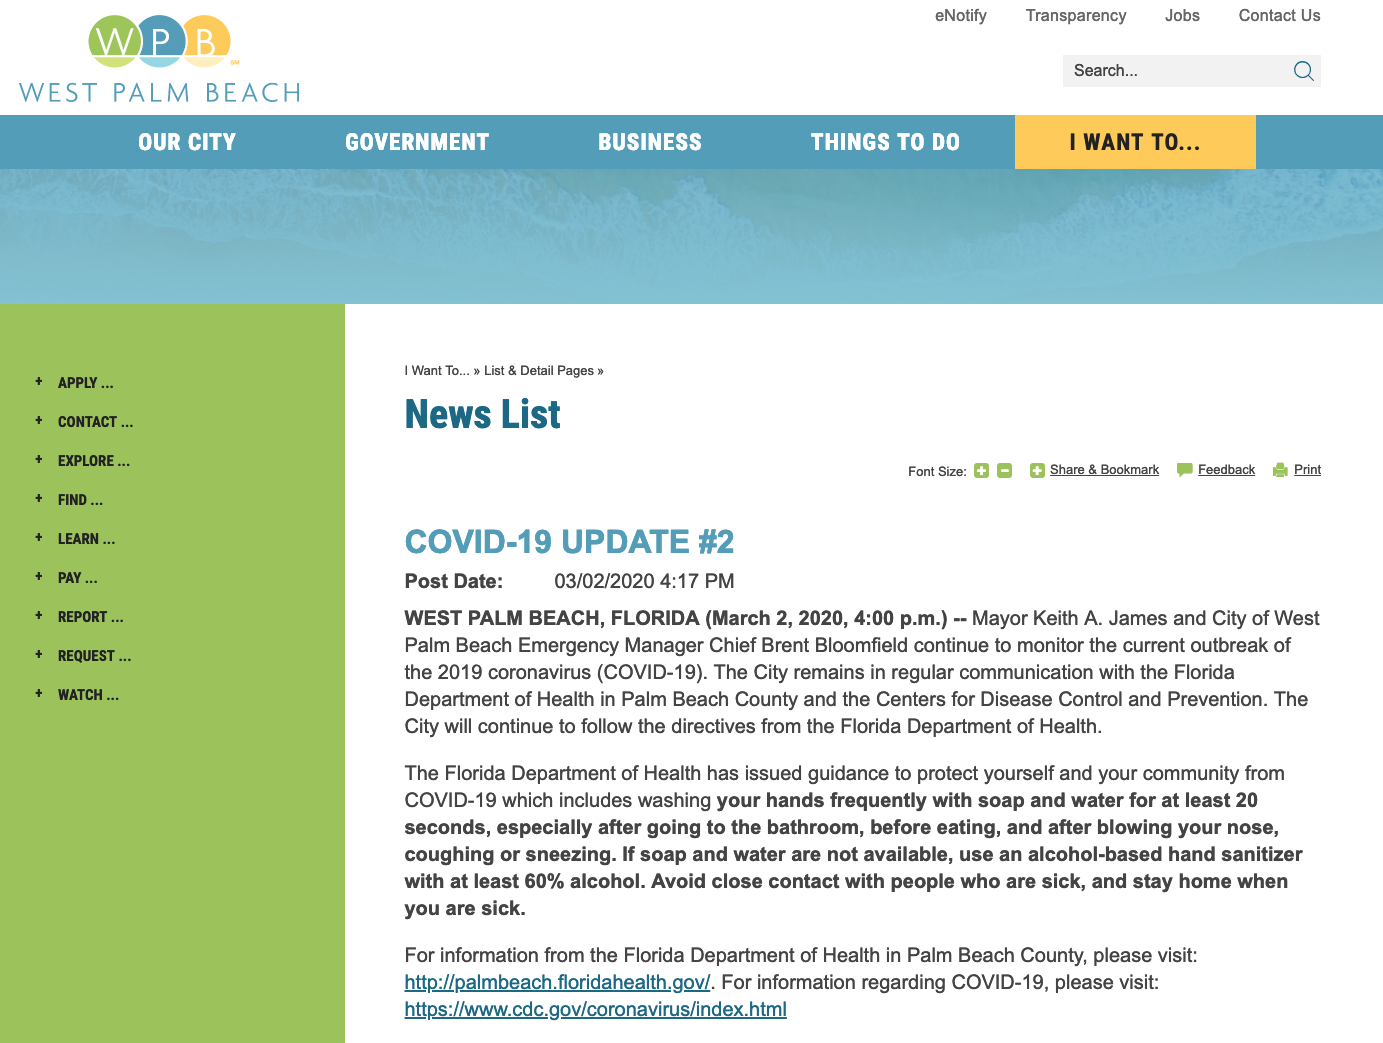 COVID: 19 webpage for West Palm Beach, Florida